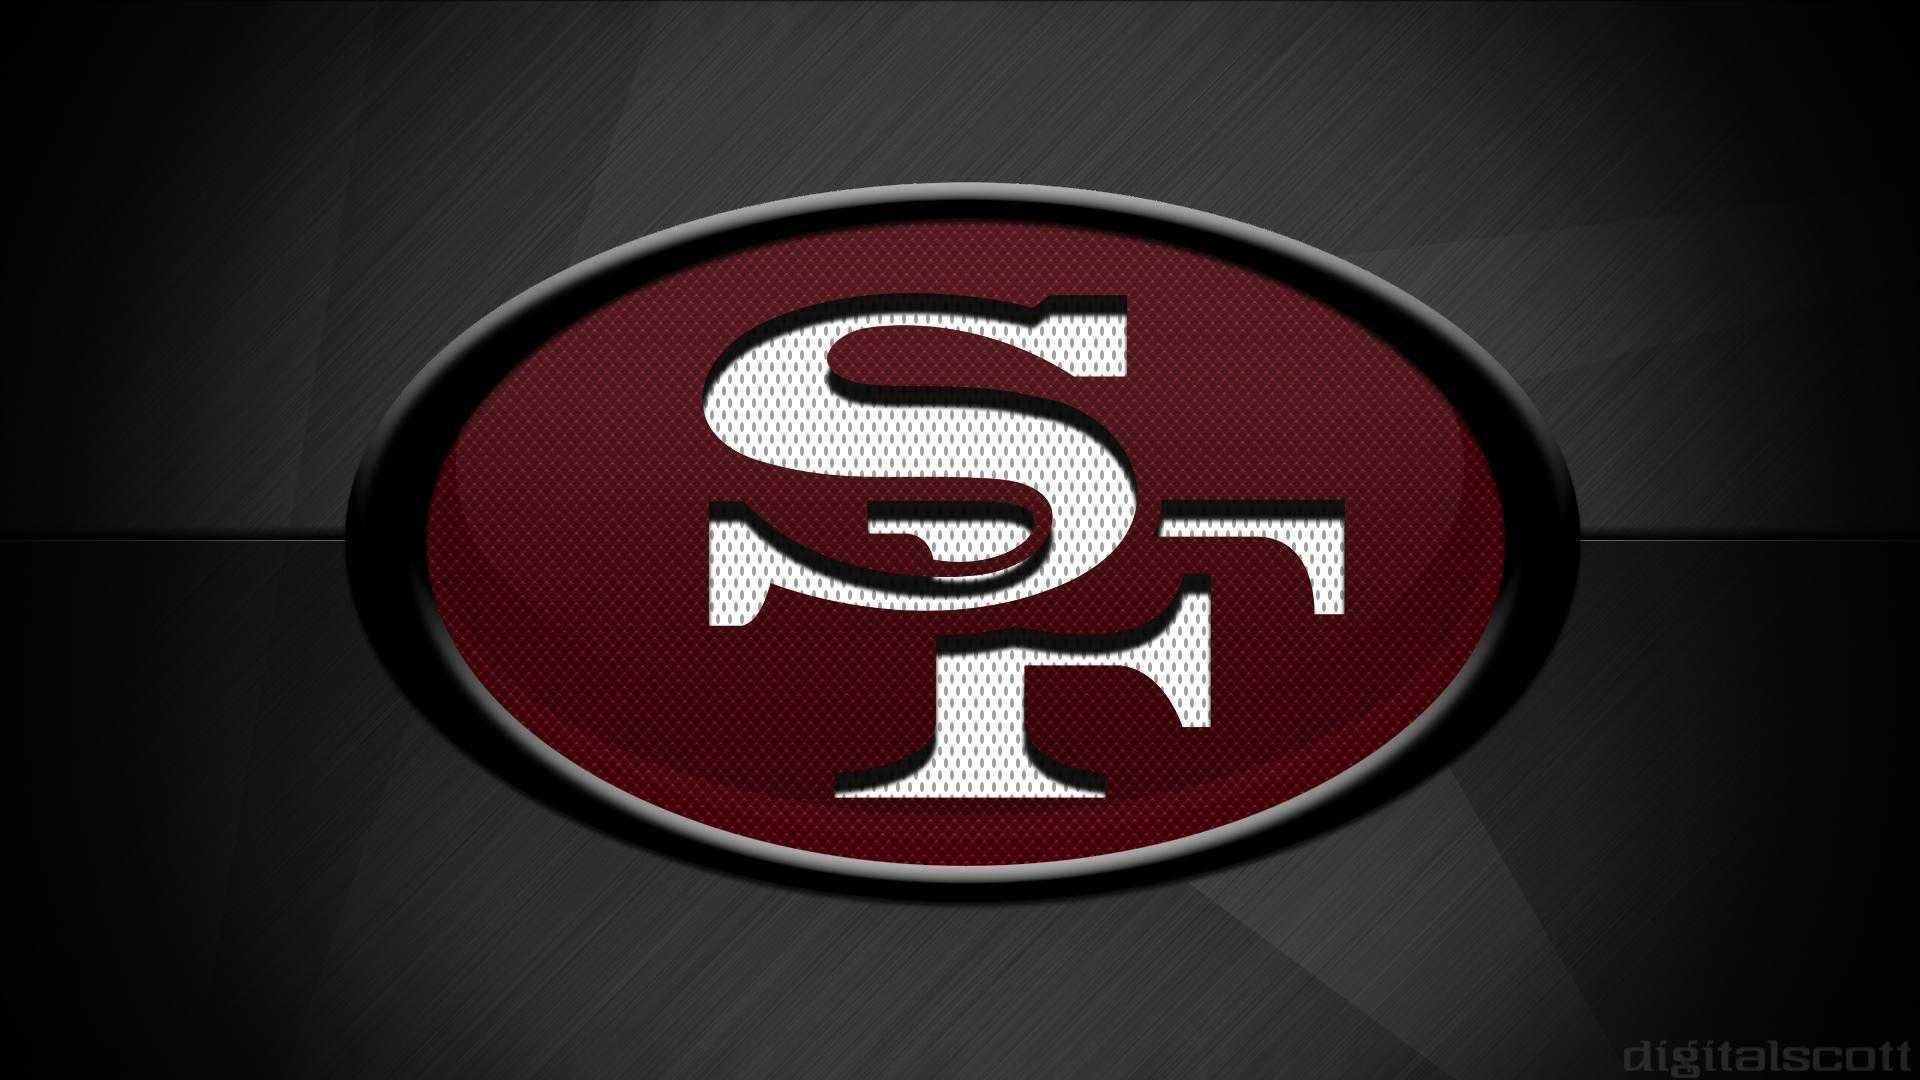 san francisco 49ers wallpaper full hd pics ers for computer